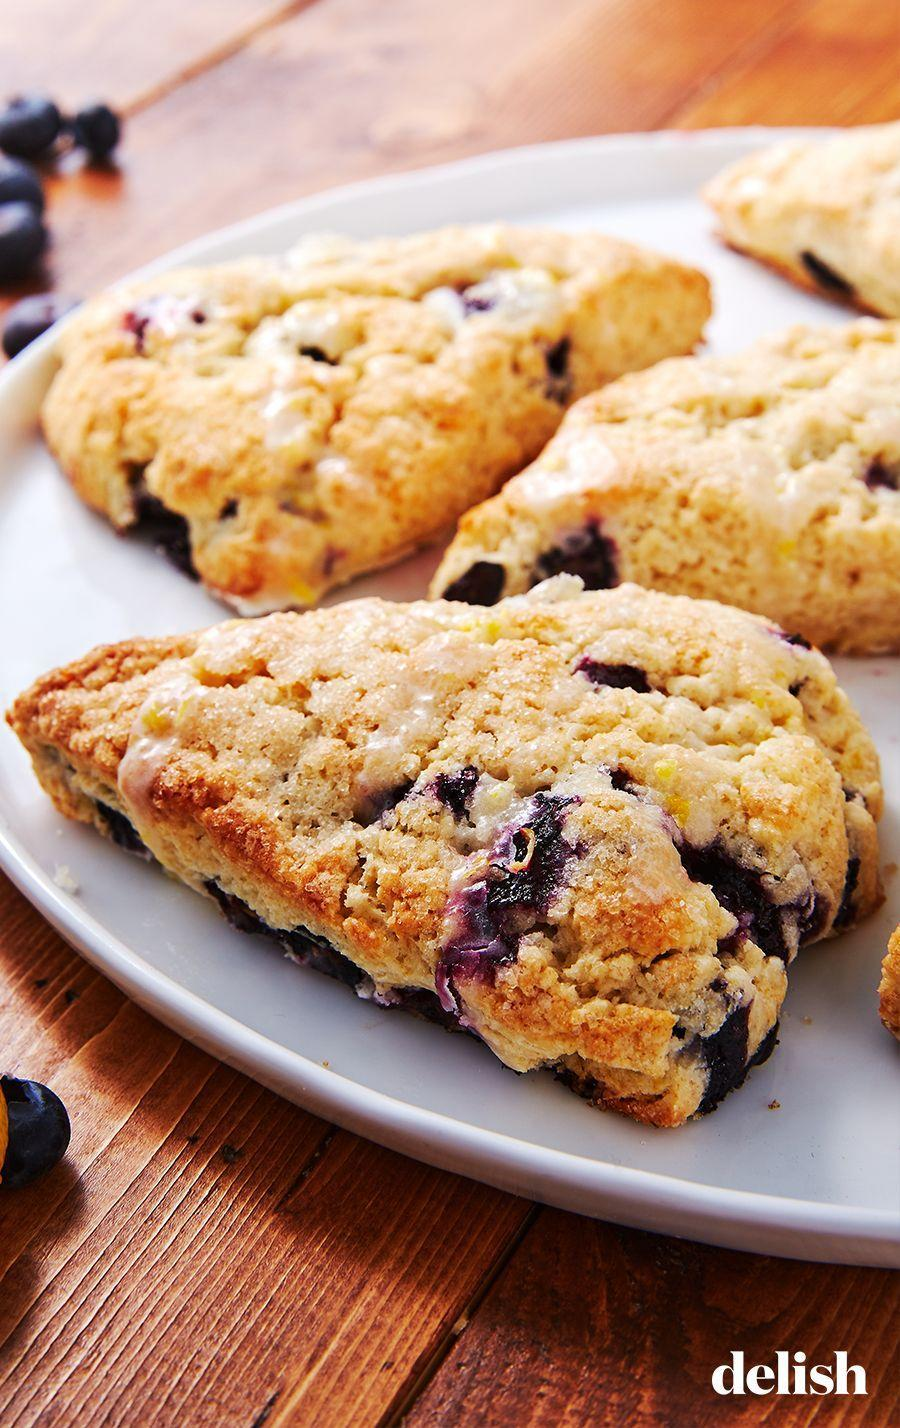 """<p>The best scones have a sugary, crispy crust and a soft, pillowy middle.</p><p>Get the recipe from <a href=""""https://www.delish.com/cooking/recipe-ideas/a26977759/buttermilk-scones-recipe/"""" rel=""""nofollow noopener"""" target=""""_blank"""" data-ylk=""""slk:Delish"""" class=""""link rapid-noclick-resp"""">Delish</a>. </p>"""